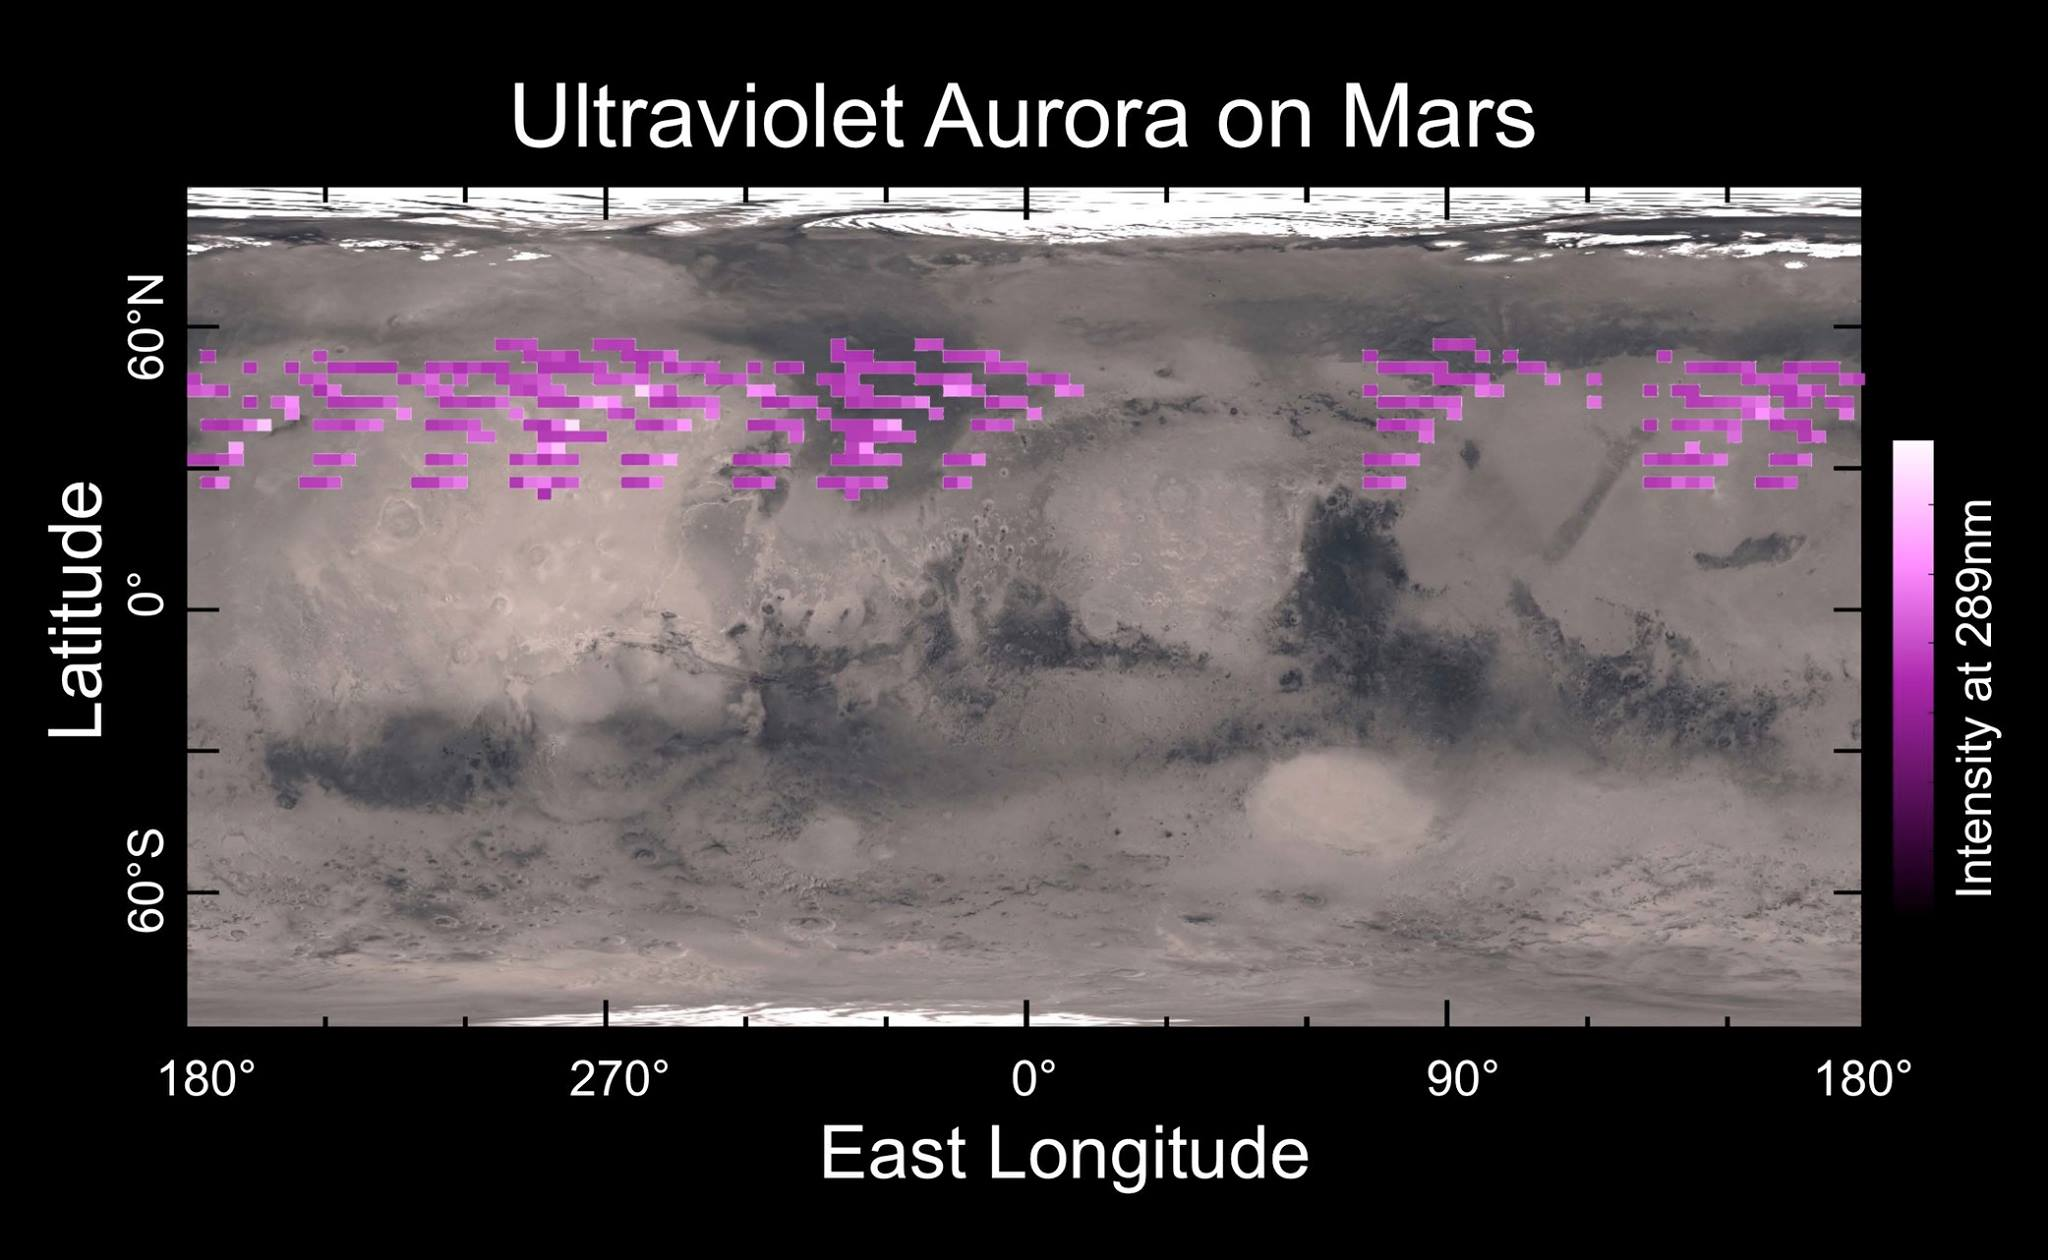 Shown here is a map of the MAVEN Imaging Ultraviolet Spectrograph's auroral detections in December 2014 overlaid on Mars' surface. The map shows that the aurora was widespread in the northern hemisphere, not tied to any geographic location. The aurora was detected in all observations during a 5-day period, though no data were taken in the southern hemisphere and some regions in the northern hemisphere were missed. (Courtesy CU/LASP)